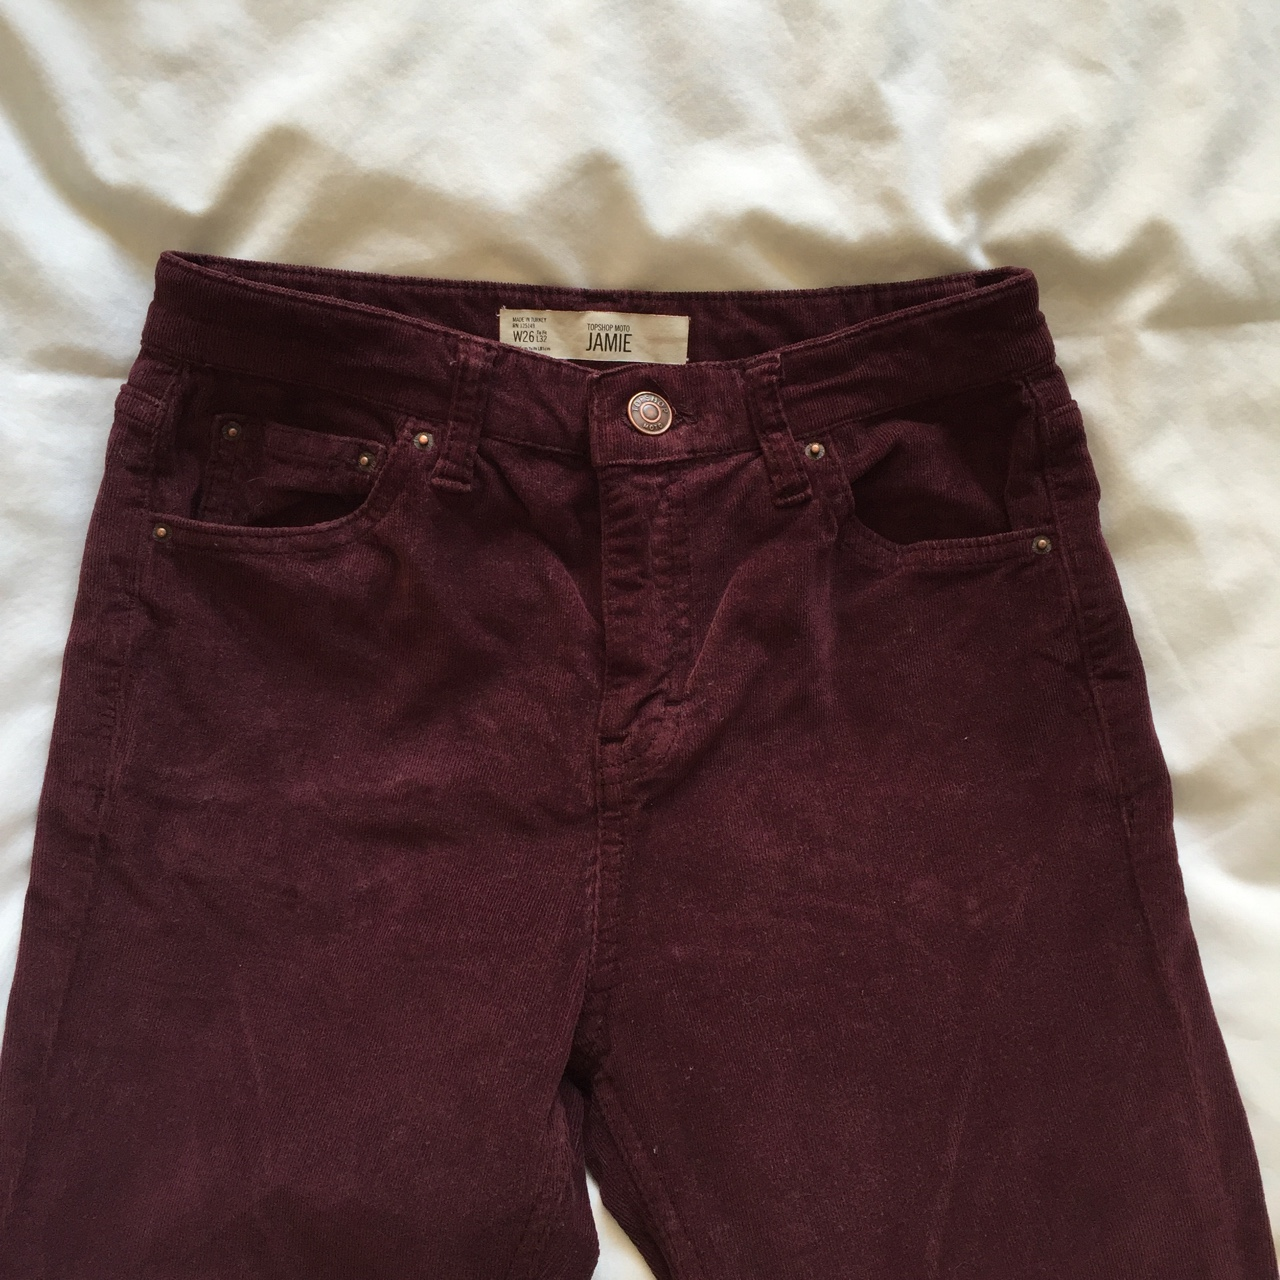 no sale tax the best various styles Topshop Jamie burgundy plum cord jeans / trousers,... - Depop